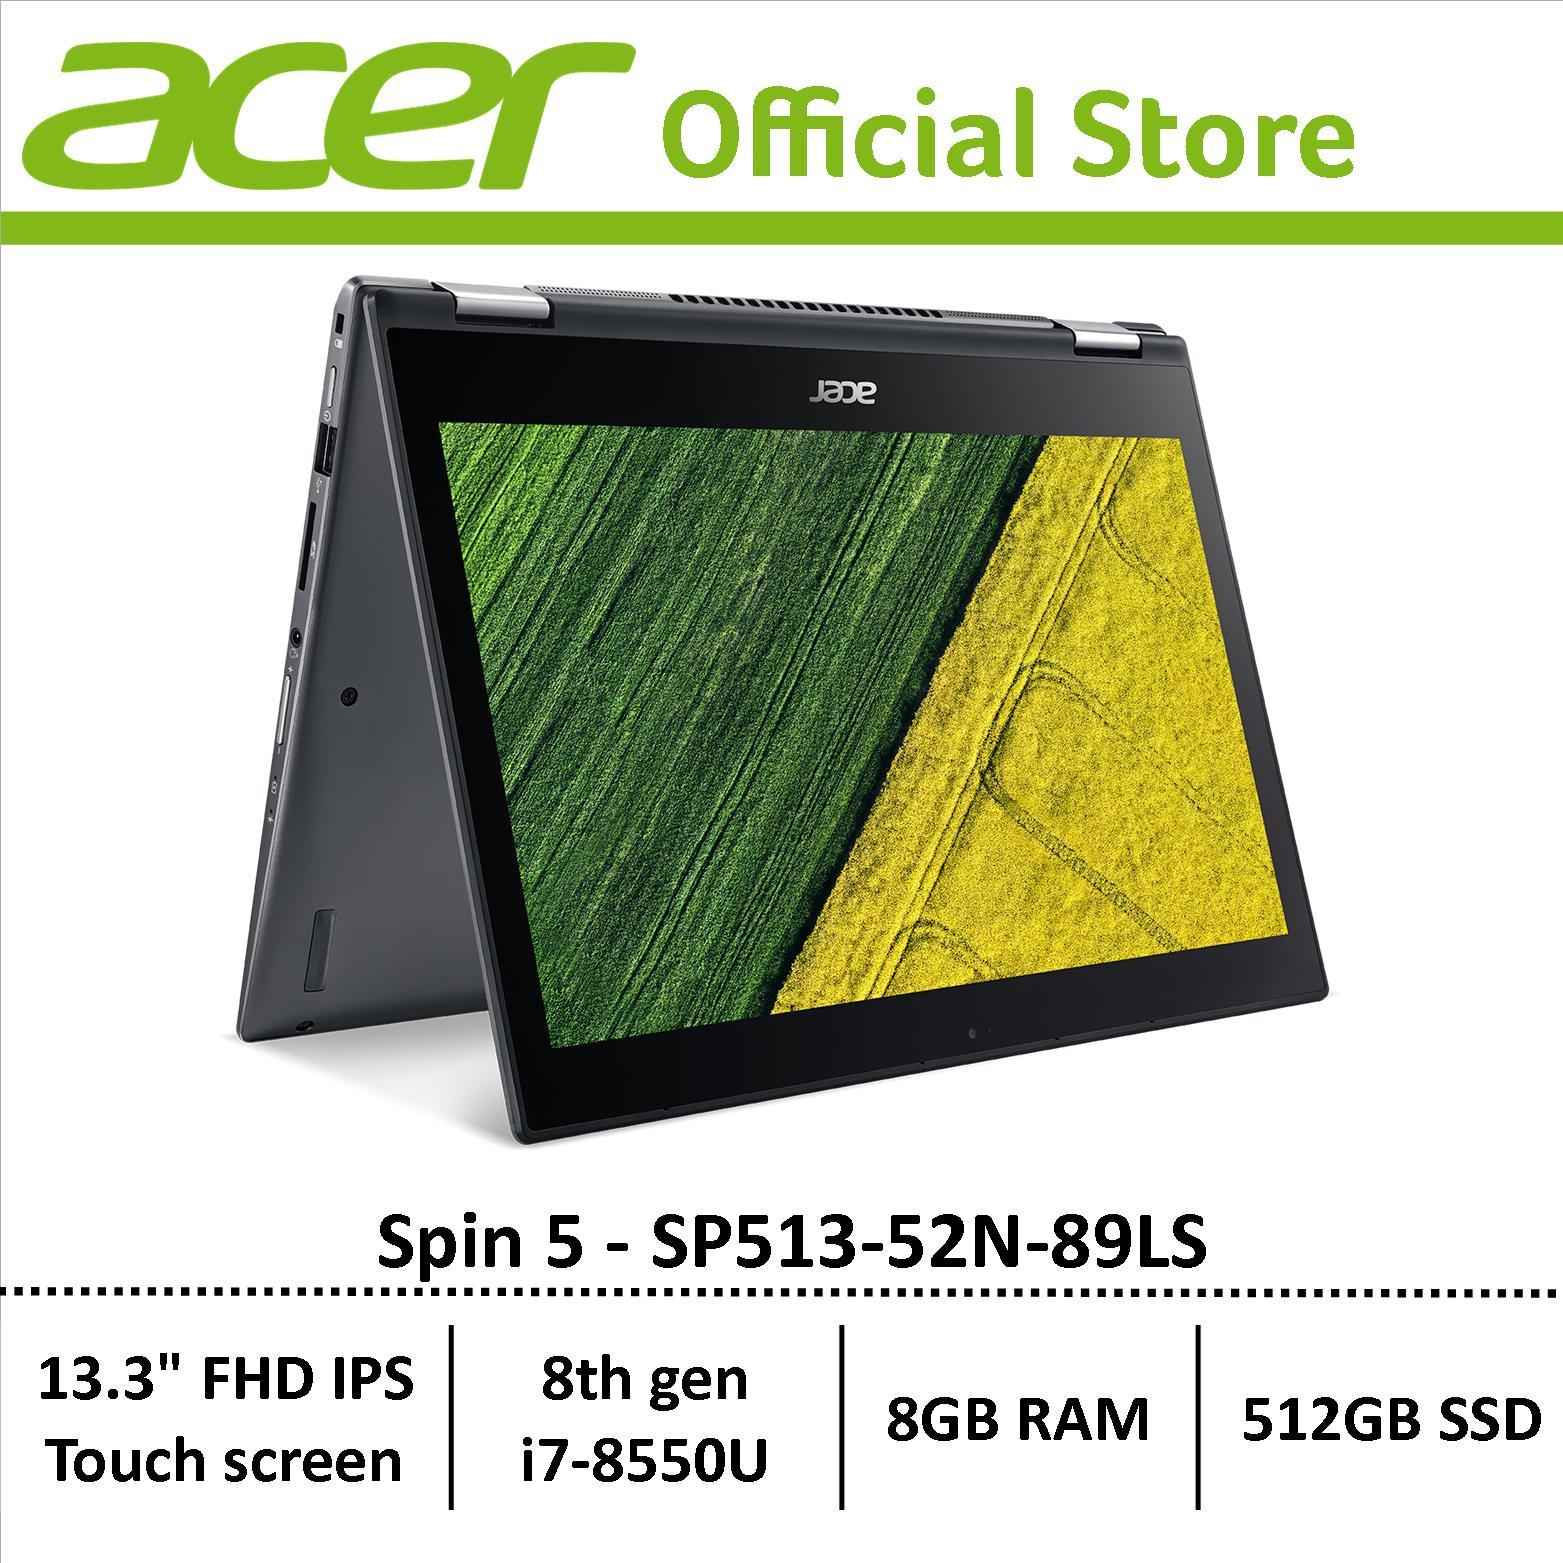 Acer Spin 5 SP513-52N-89LS Convertible Laptop - Free astone speaker